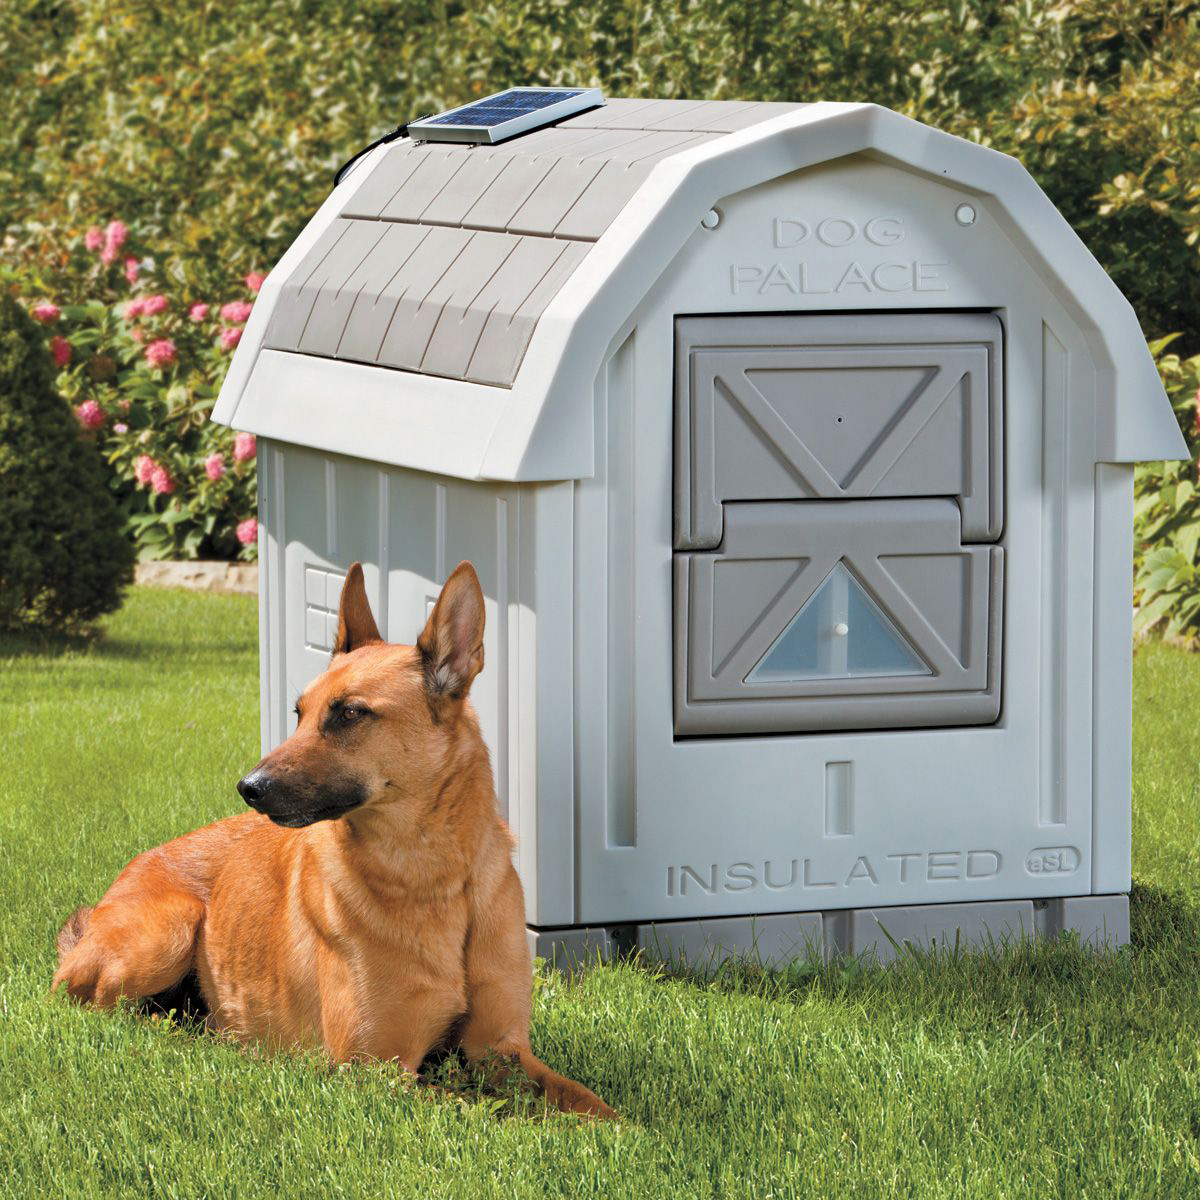 Insulated Outdoor Dog House Dog Palace Insulated Dog House The Green Head